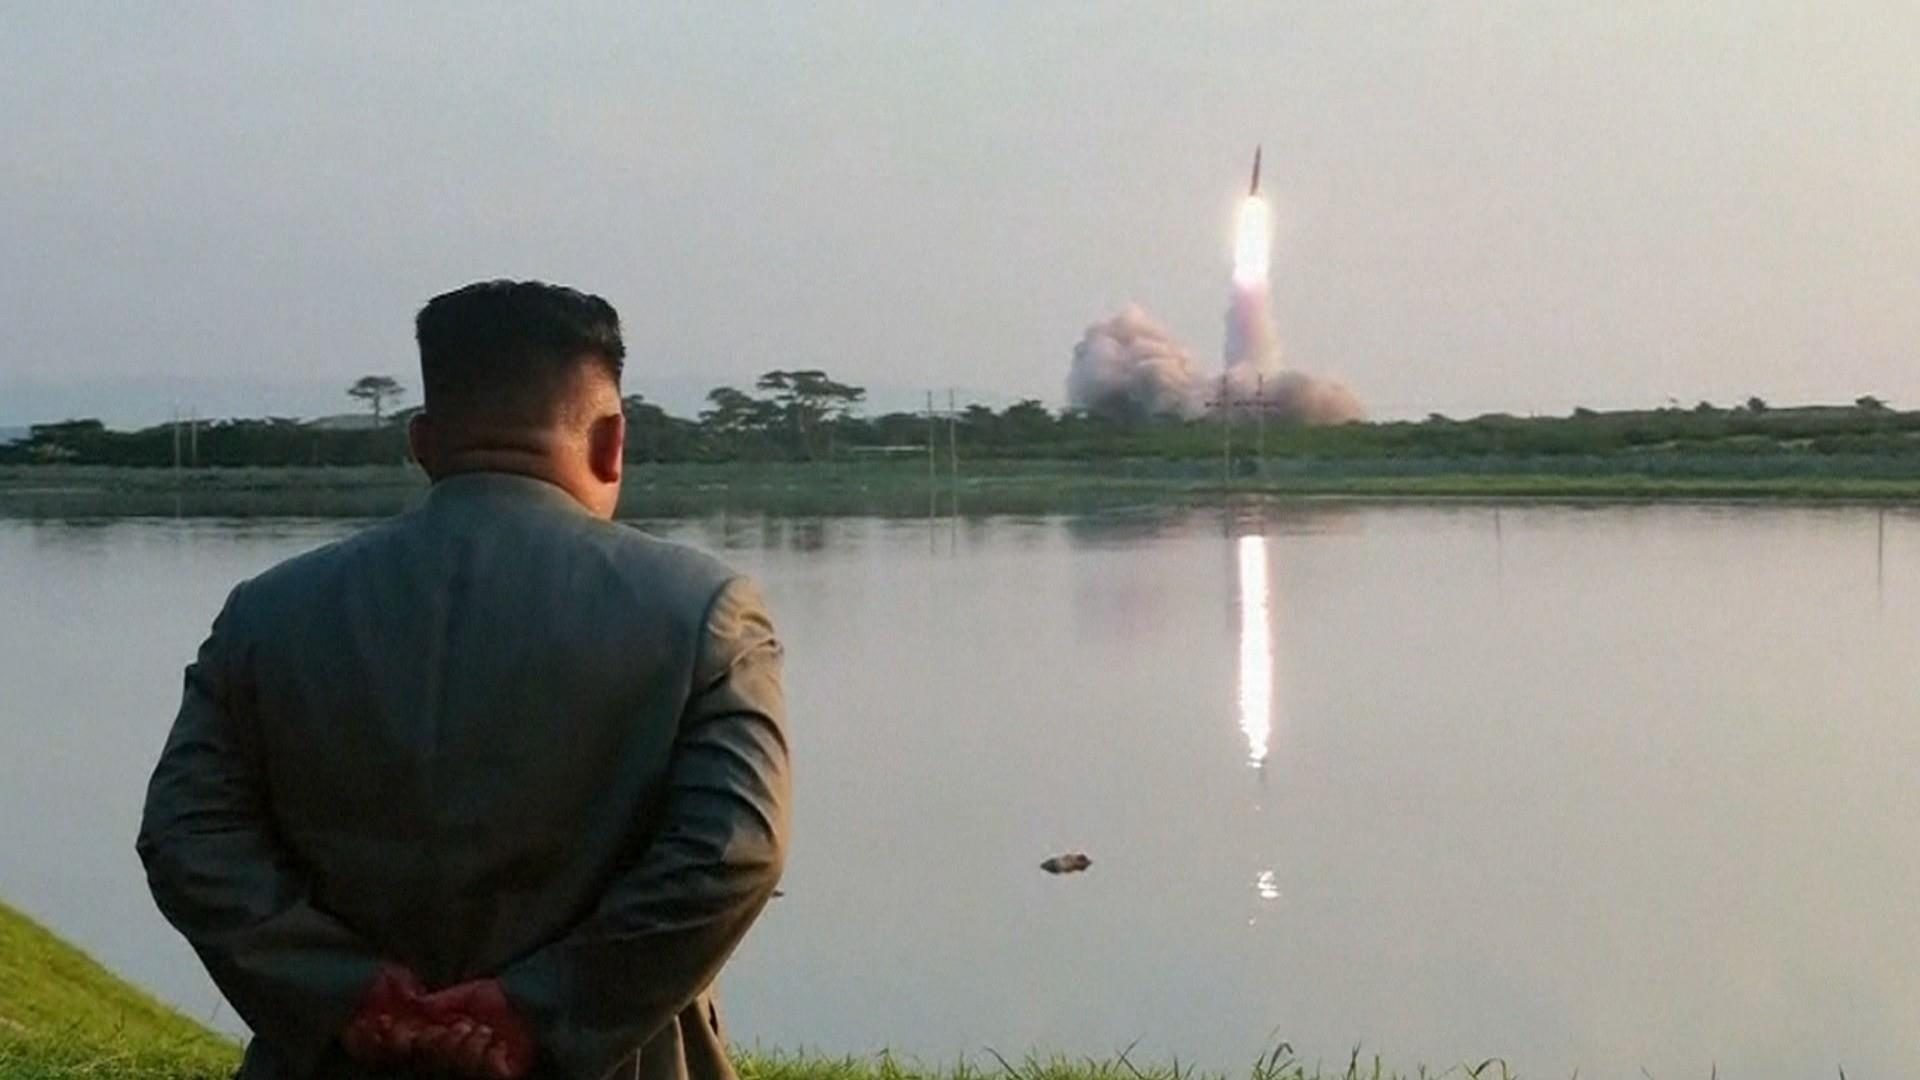 North Korea fired 2 short-range ballistic missiles in latest launch, South Korean official says